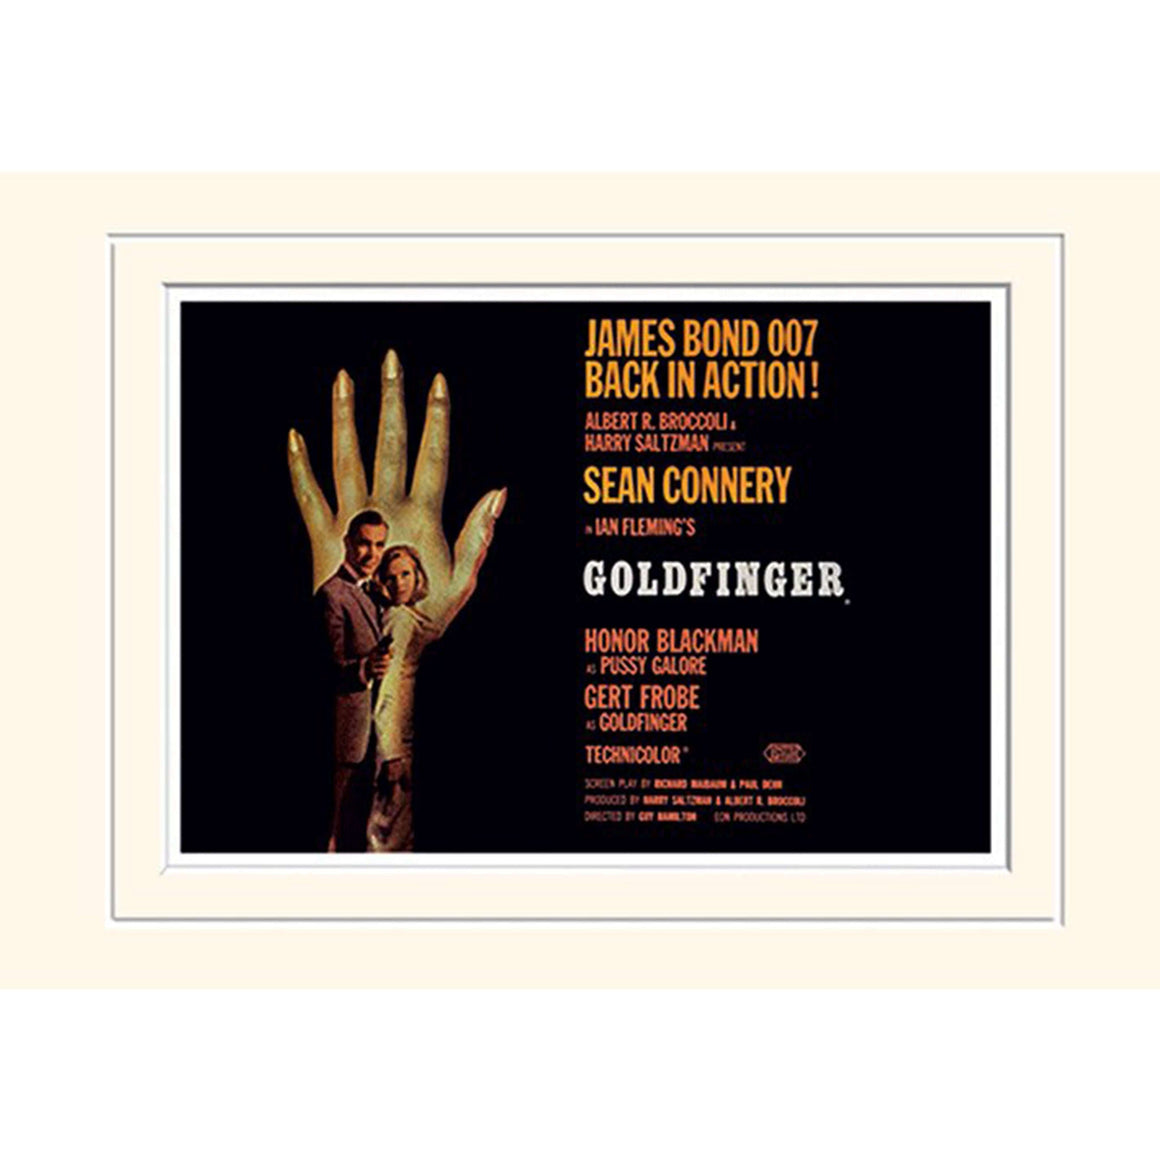 Goldfinger (Hand) 30 X 40cm Mounted Print - 007STORE